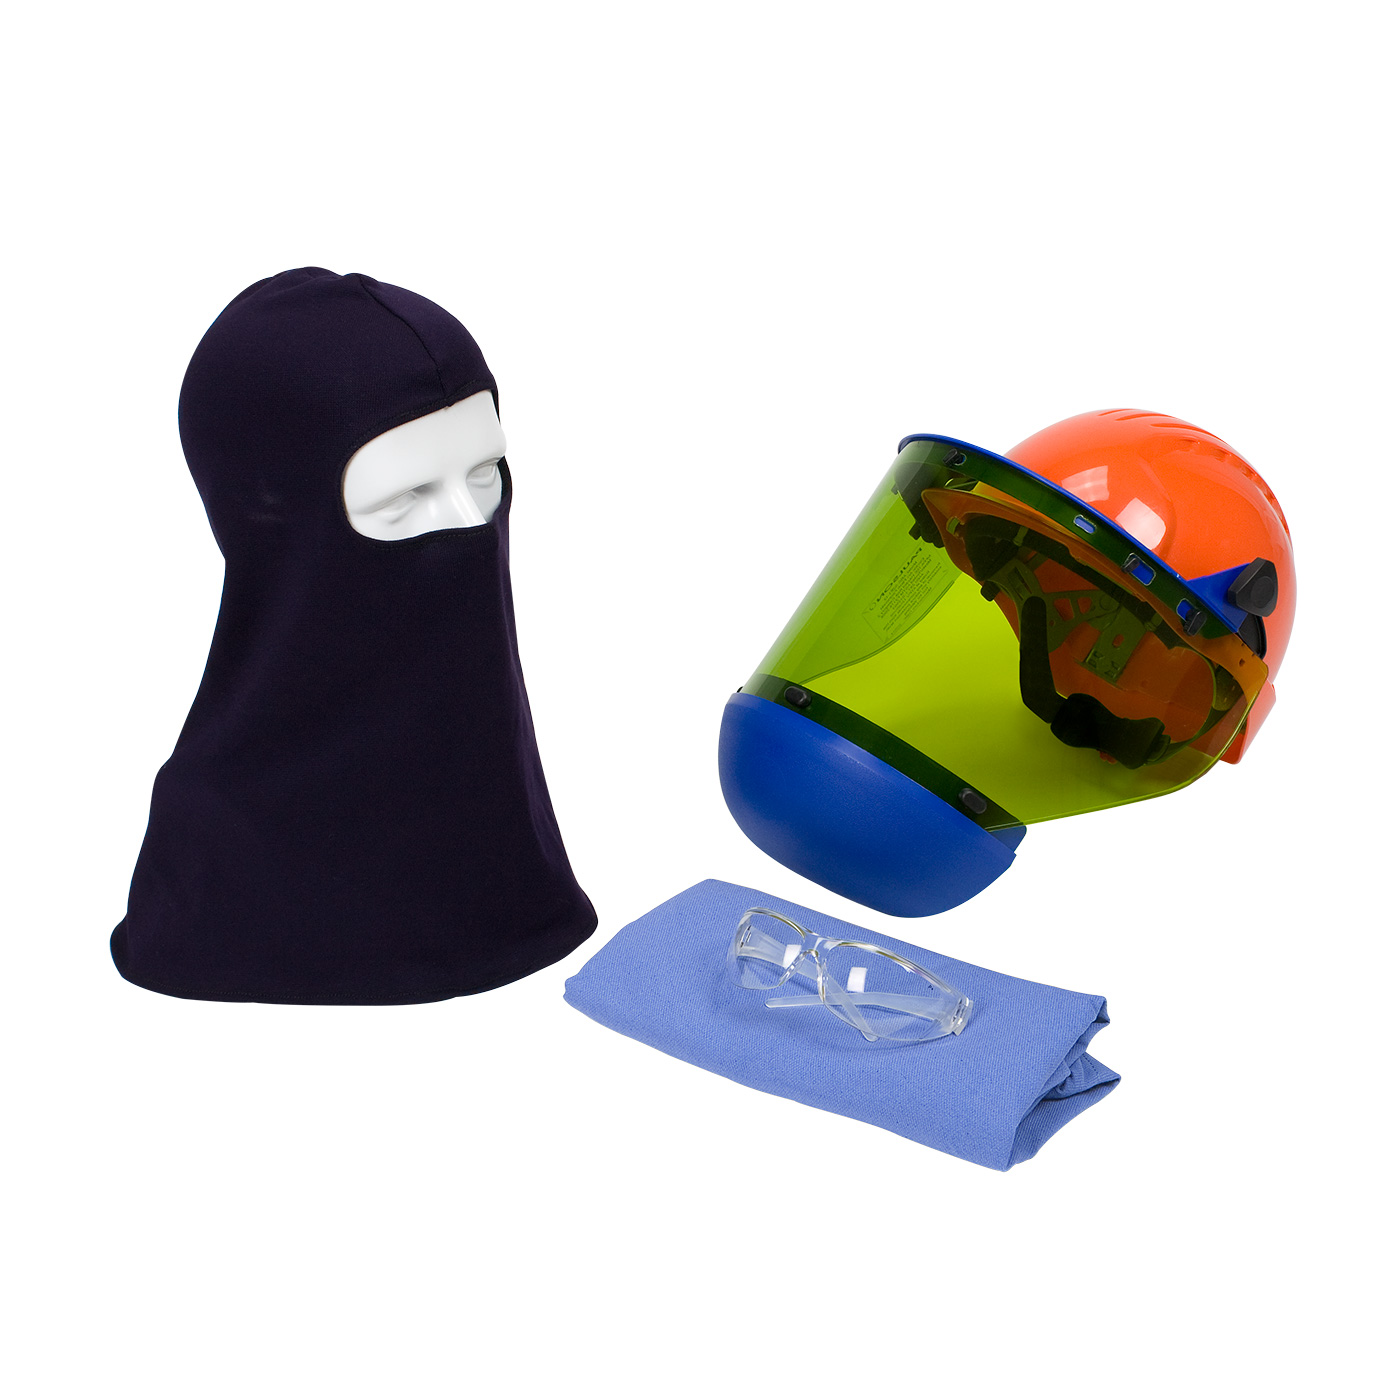 PIP® Navy 12 Cal/cm2 Arc & Flame Resistant Flash Safety Kit - One Size